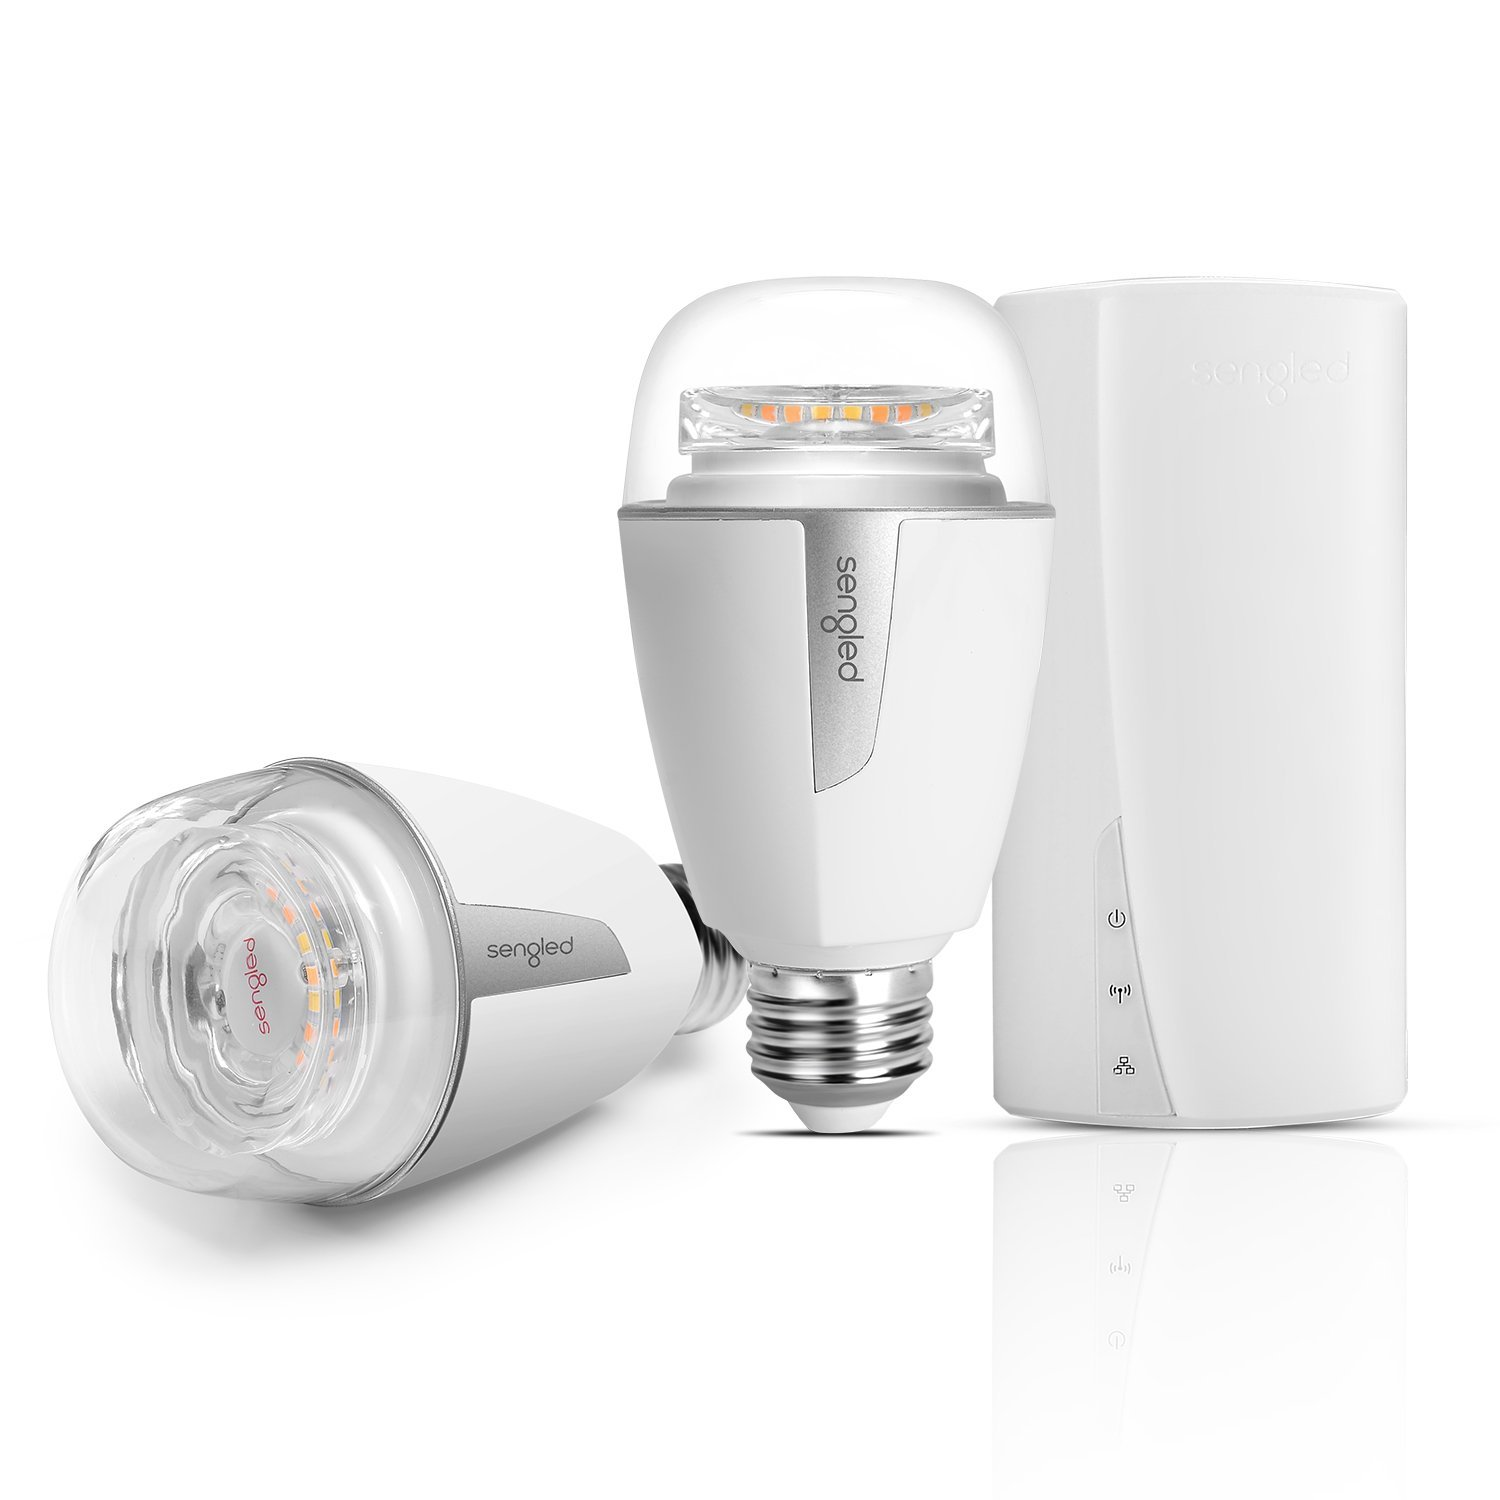 Sengled Element Plus White Ambiance Smart Bulb Starter Kit